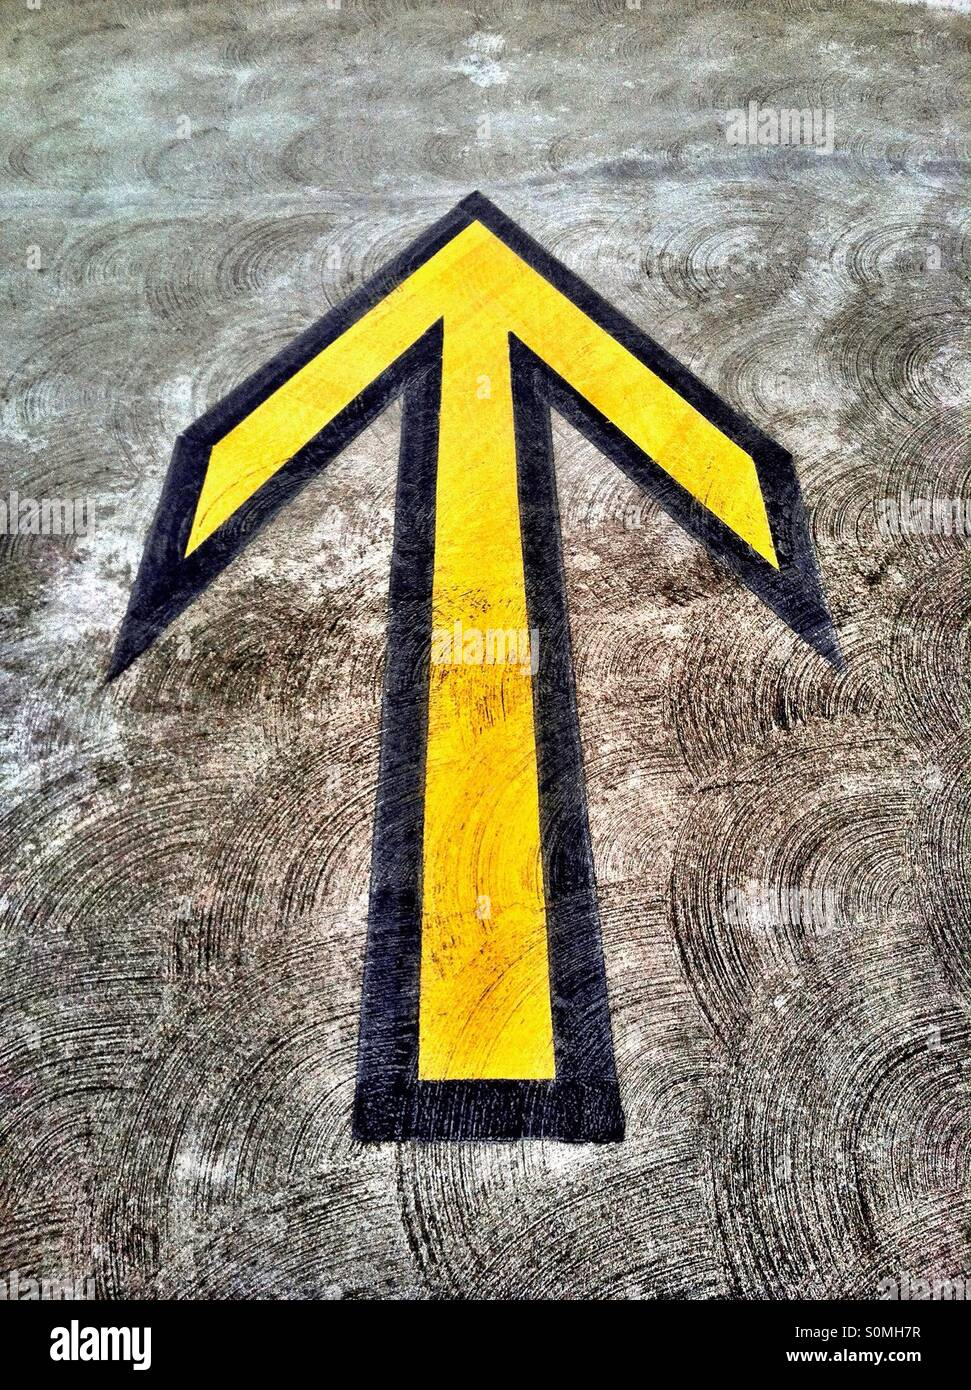 Yellow directional arrow on pavement in parking structure - Stock Image